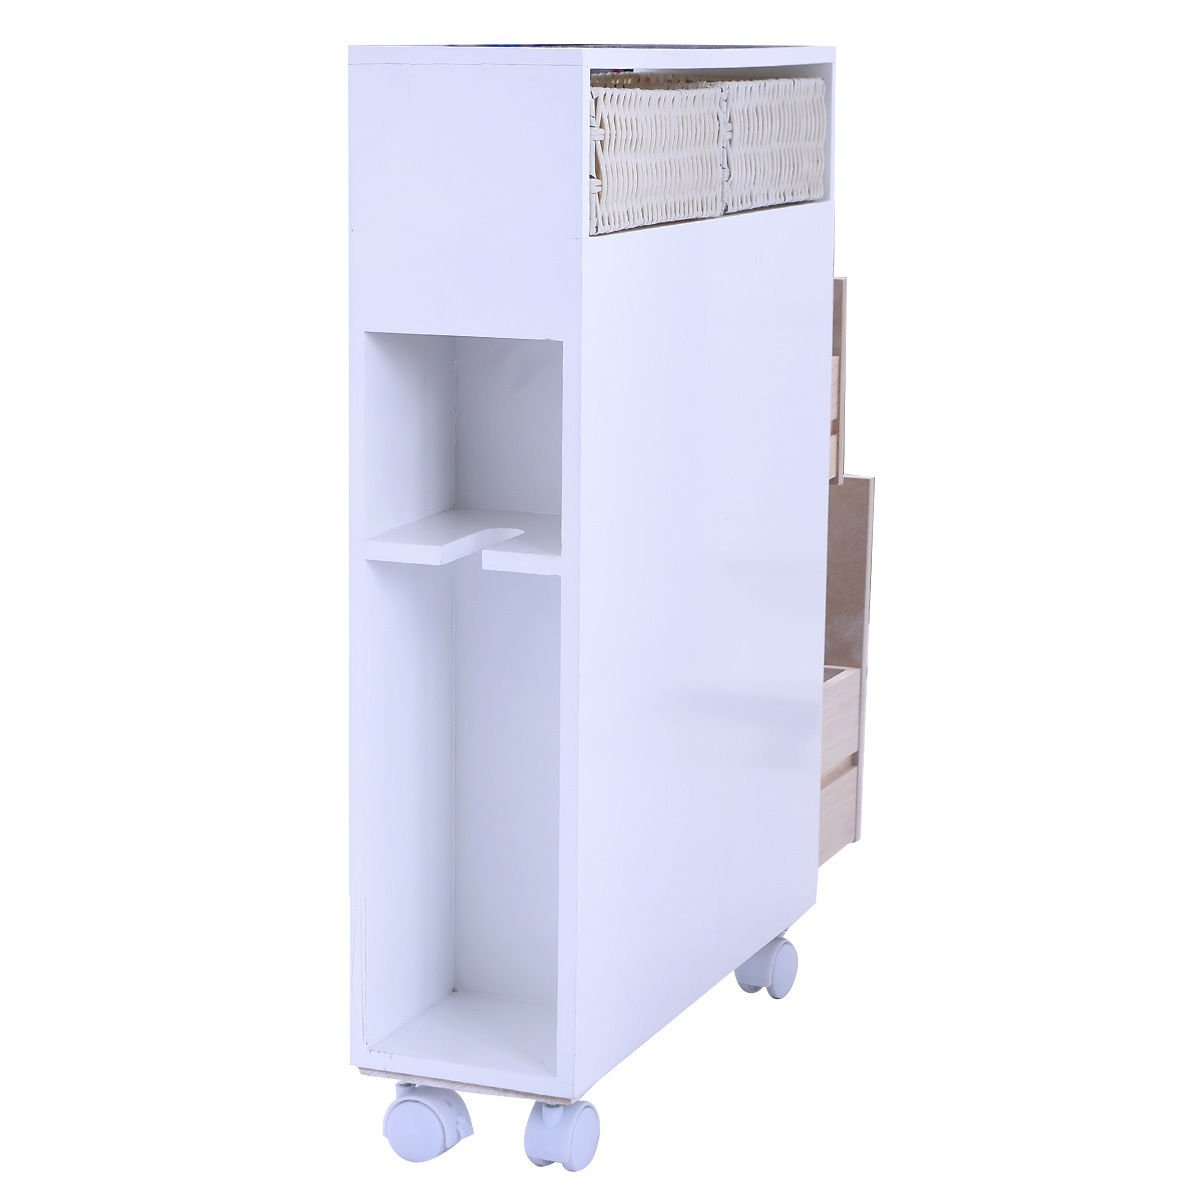 Tarragona White Floor Bathroom Cabinet : Bathroom floor cabinet white d